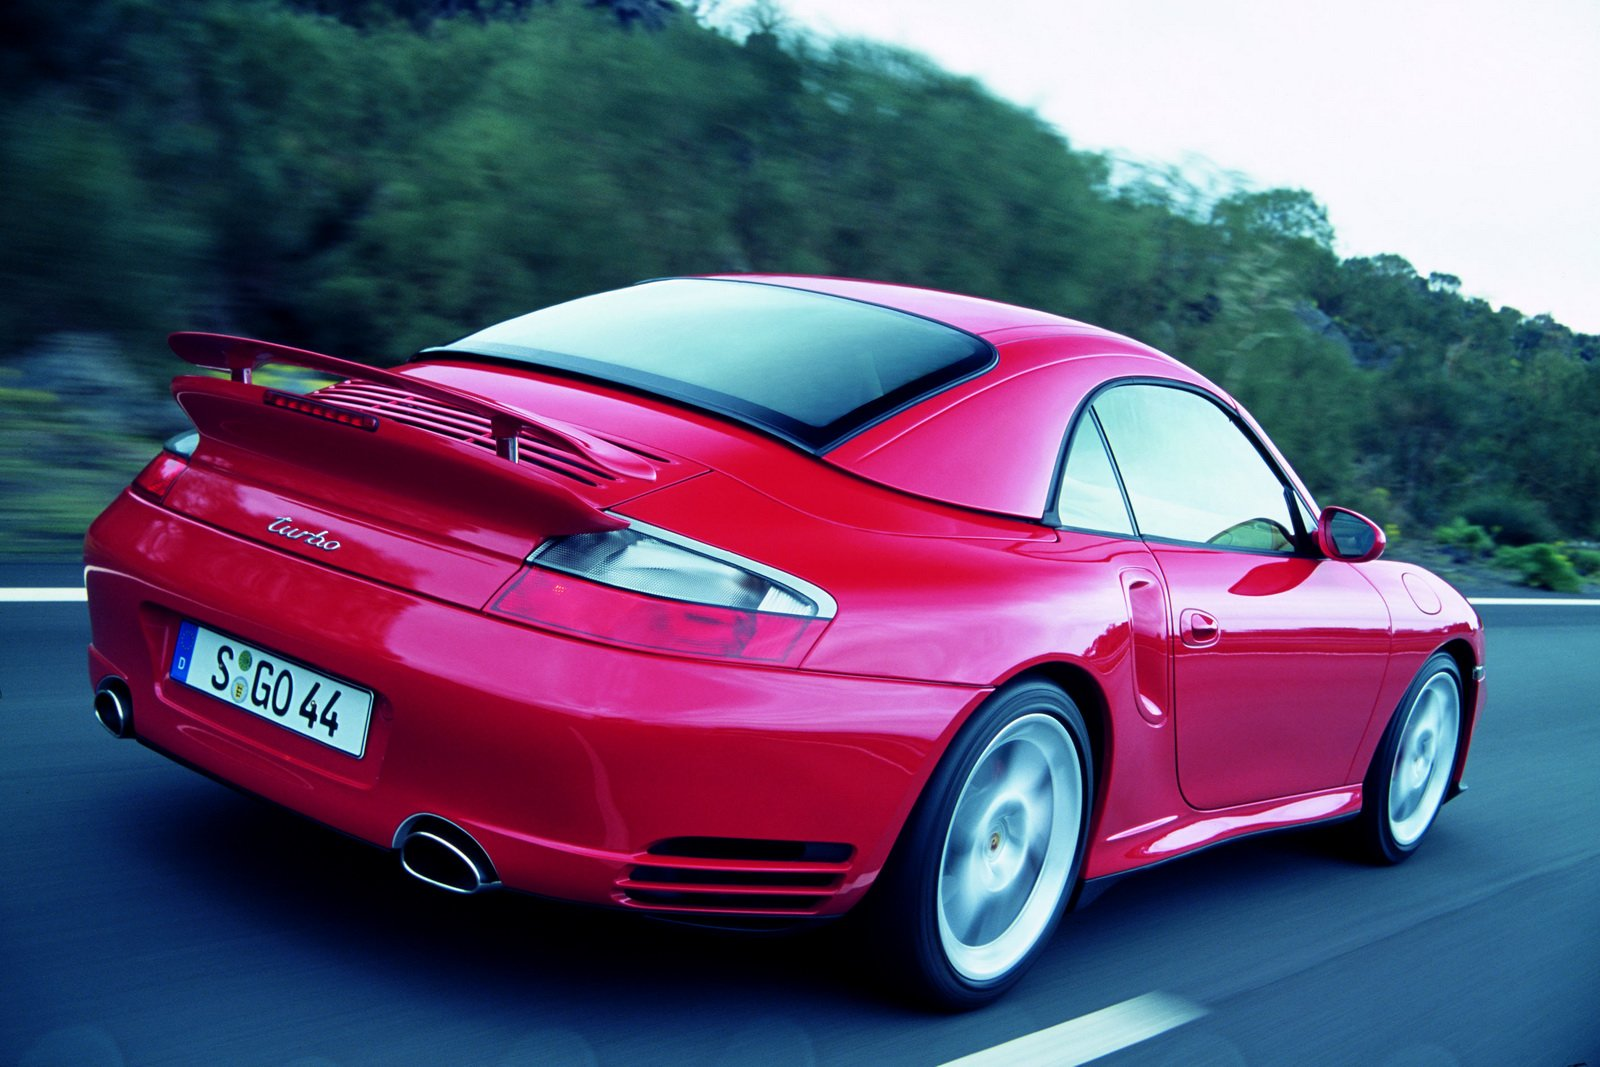 Latest Audi Car Porsche Pays Tribute To The 911 Turbo With Free Download